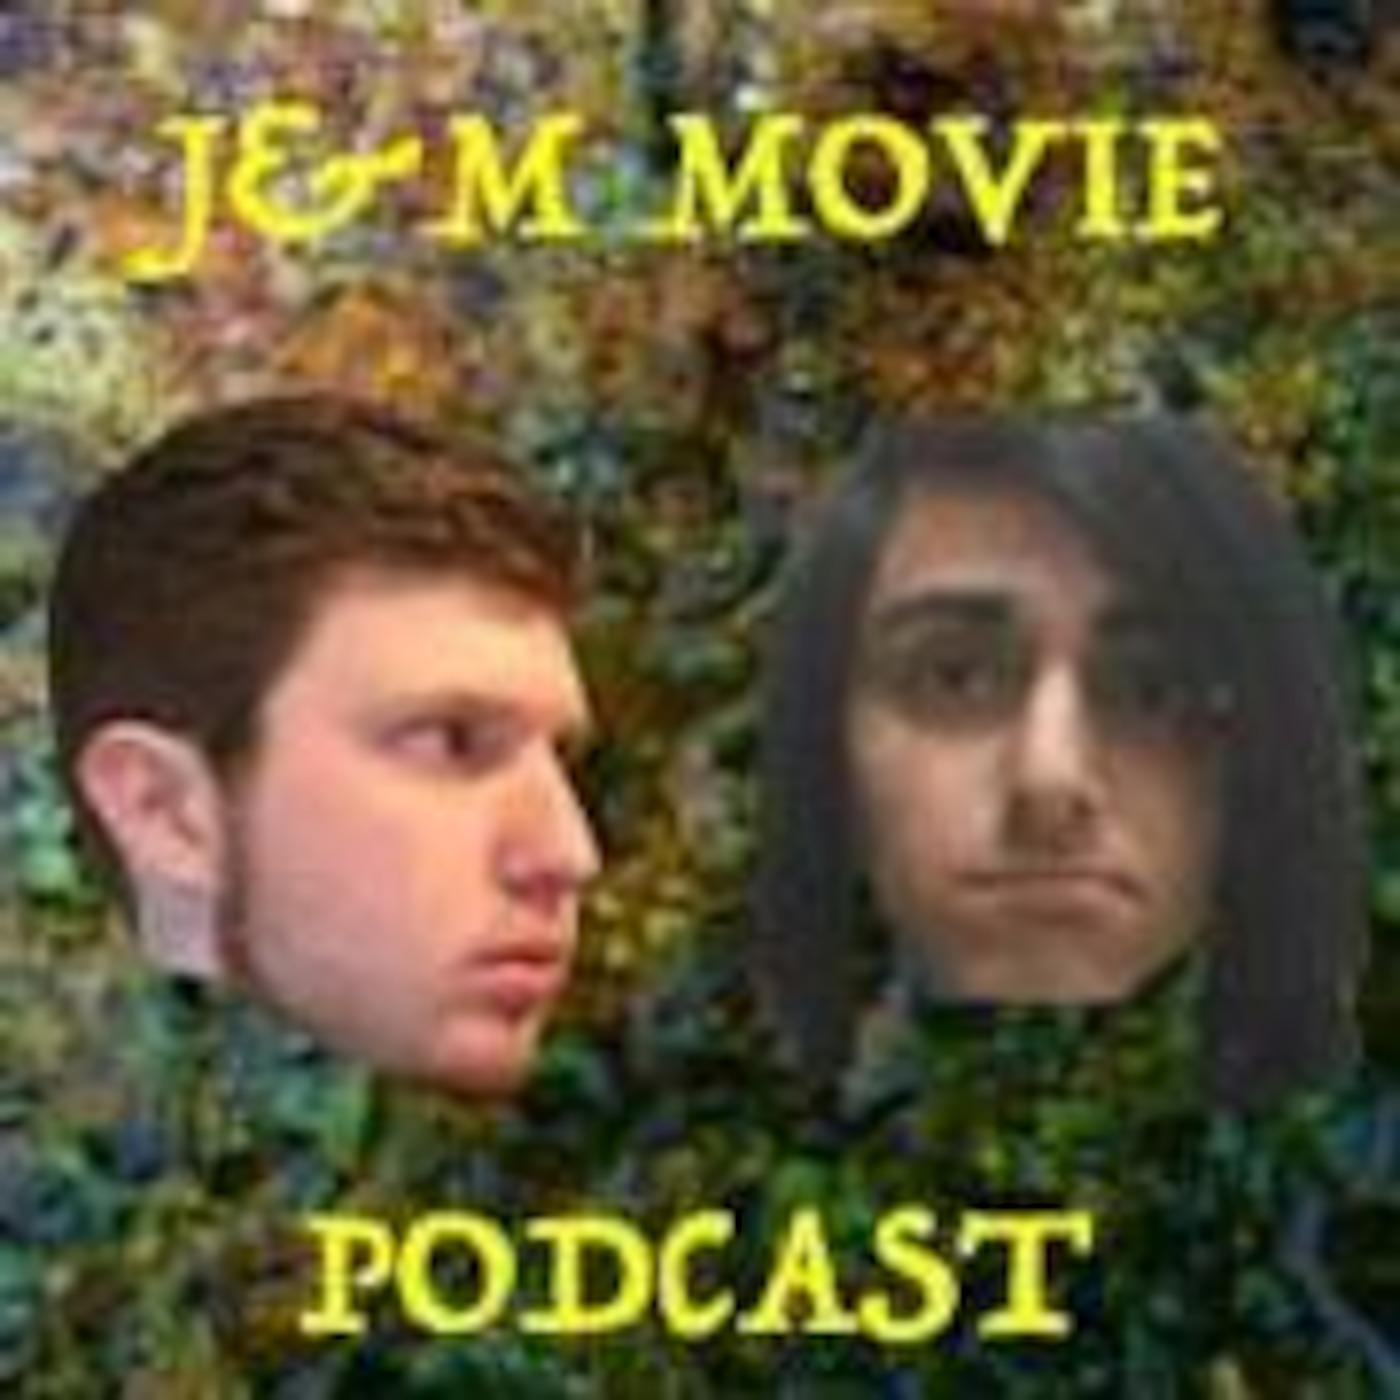 J&M Movie Podcast